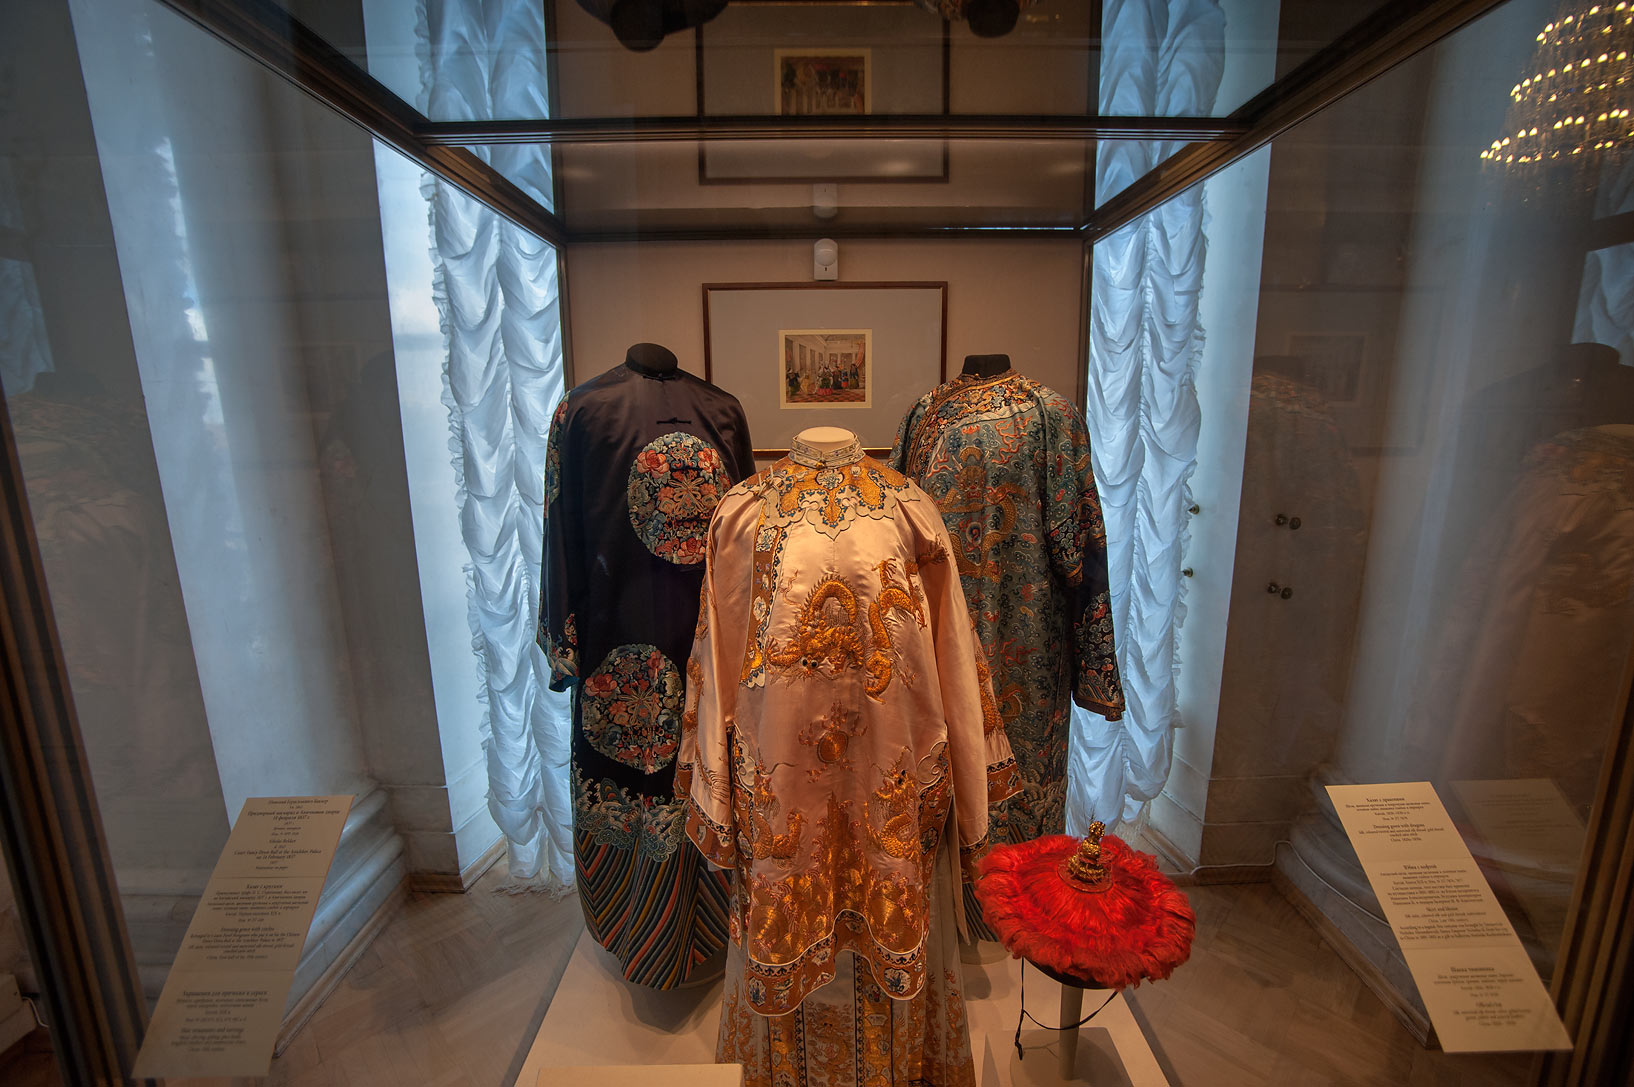 Exhibition of traditional Russian dress in Hermitage Museum. St.Petersburg, Russia